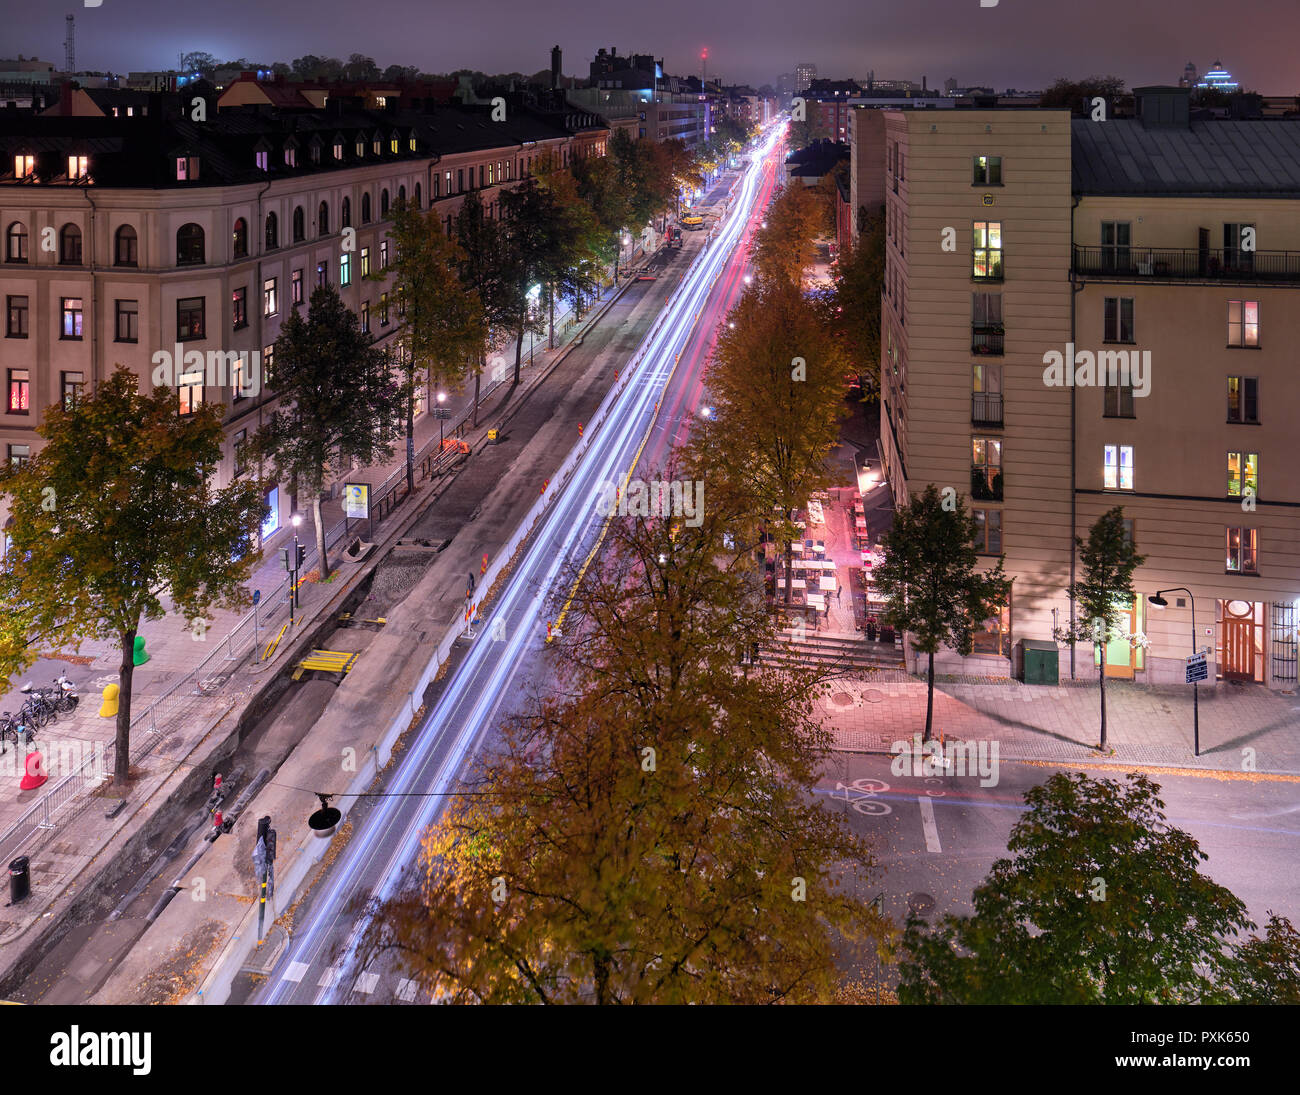 Hazy night Kungsholmen, Stockholm, from a window - Stock Image